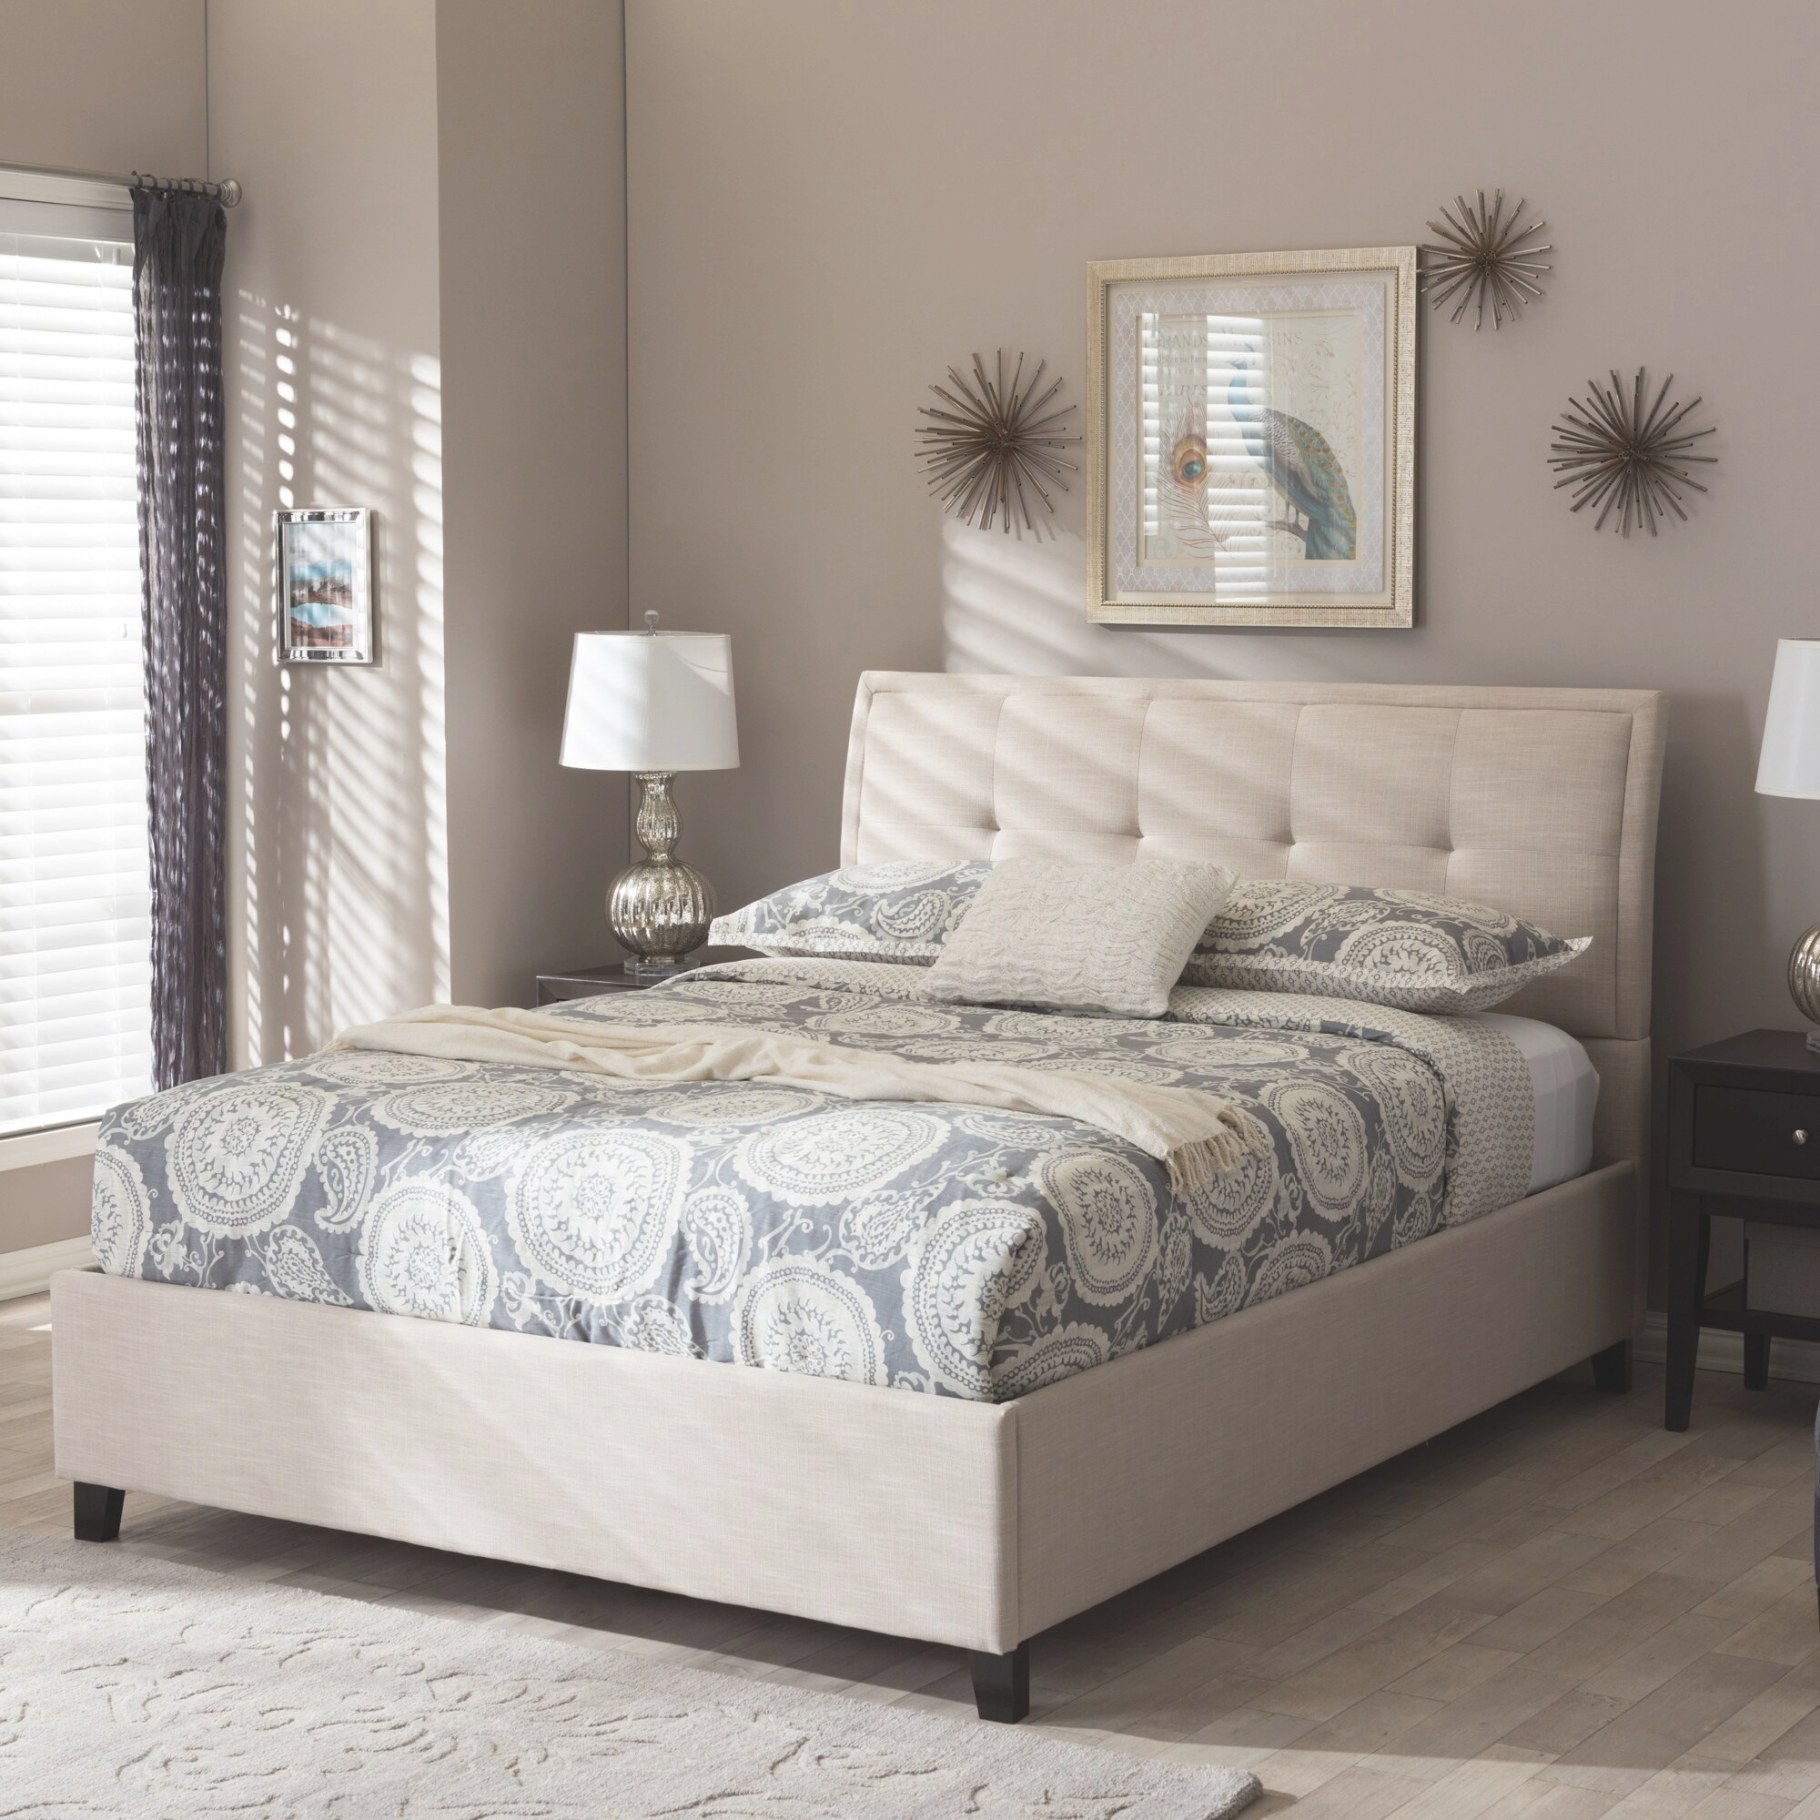 Wholesale Interiors Baxton Studio Queen Upholstered inside Queen Platform Bed With Storage And Headboard